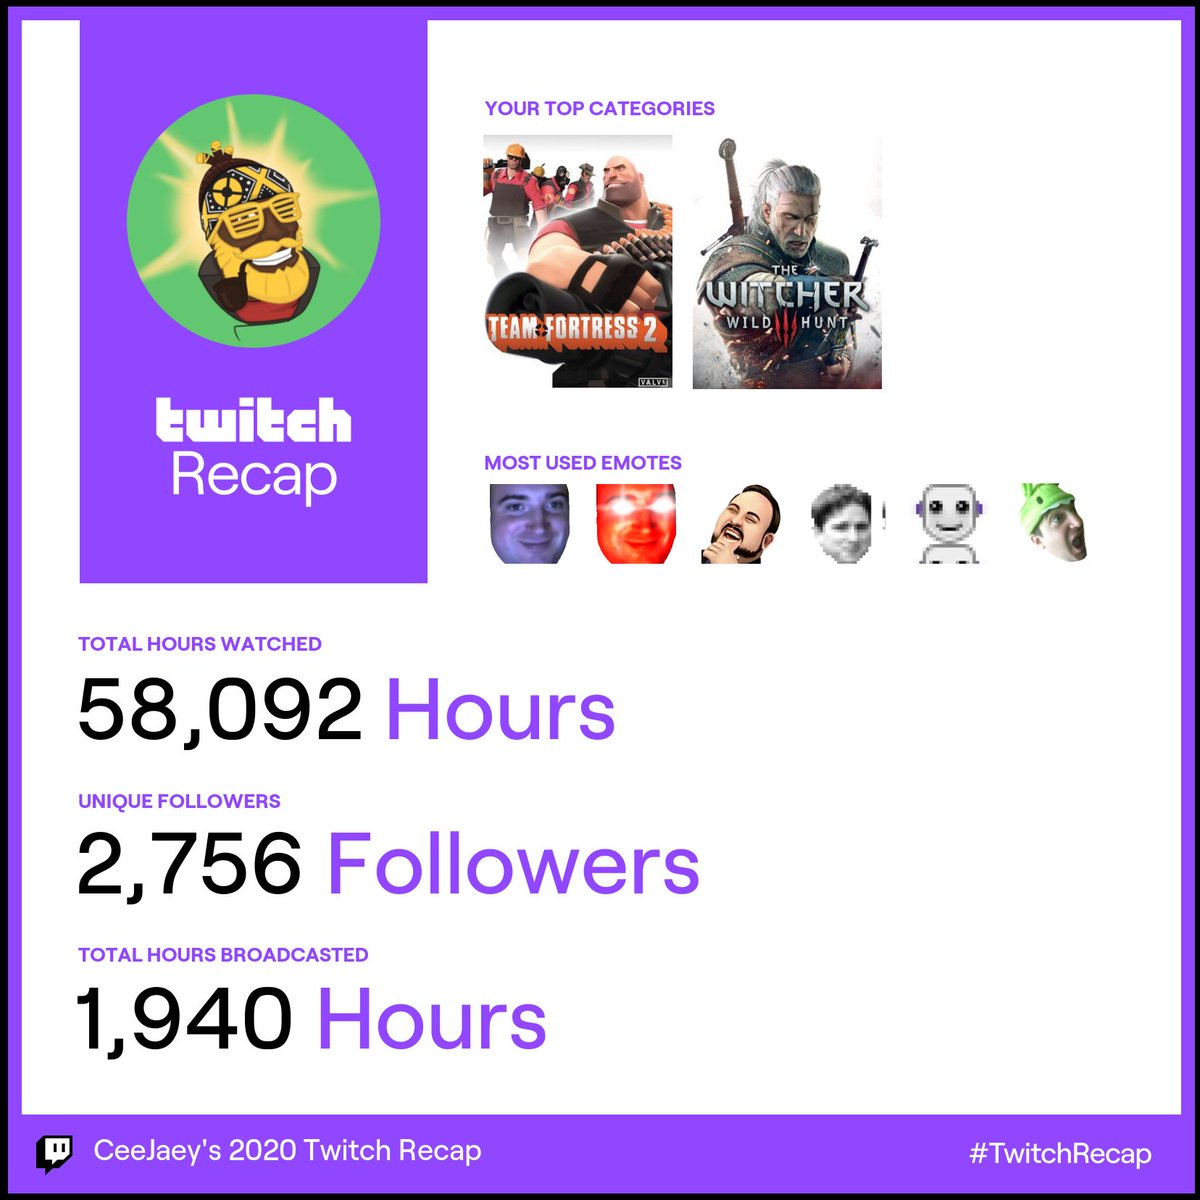 Shoutout to all the gamers new and old who made 2020's streams epic  Let's try and get over 2,000 hours streamed this year? #TwitchRecap